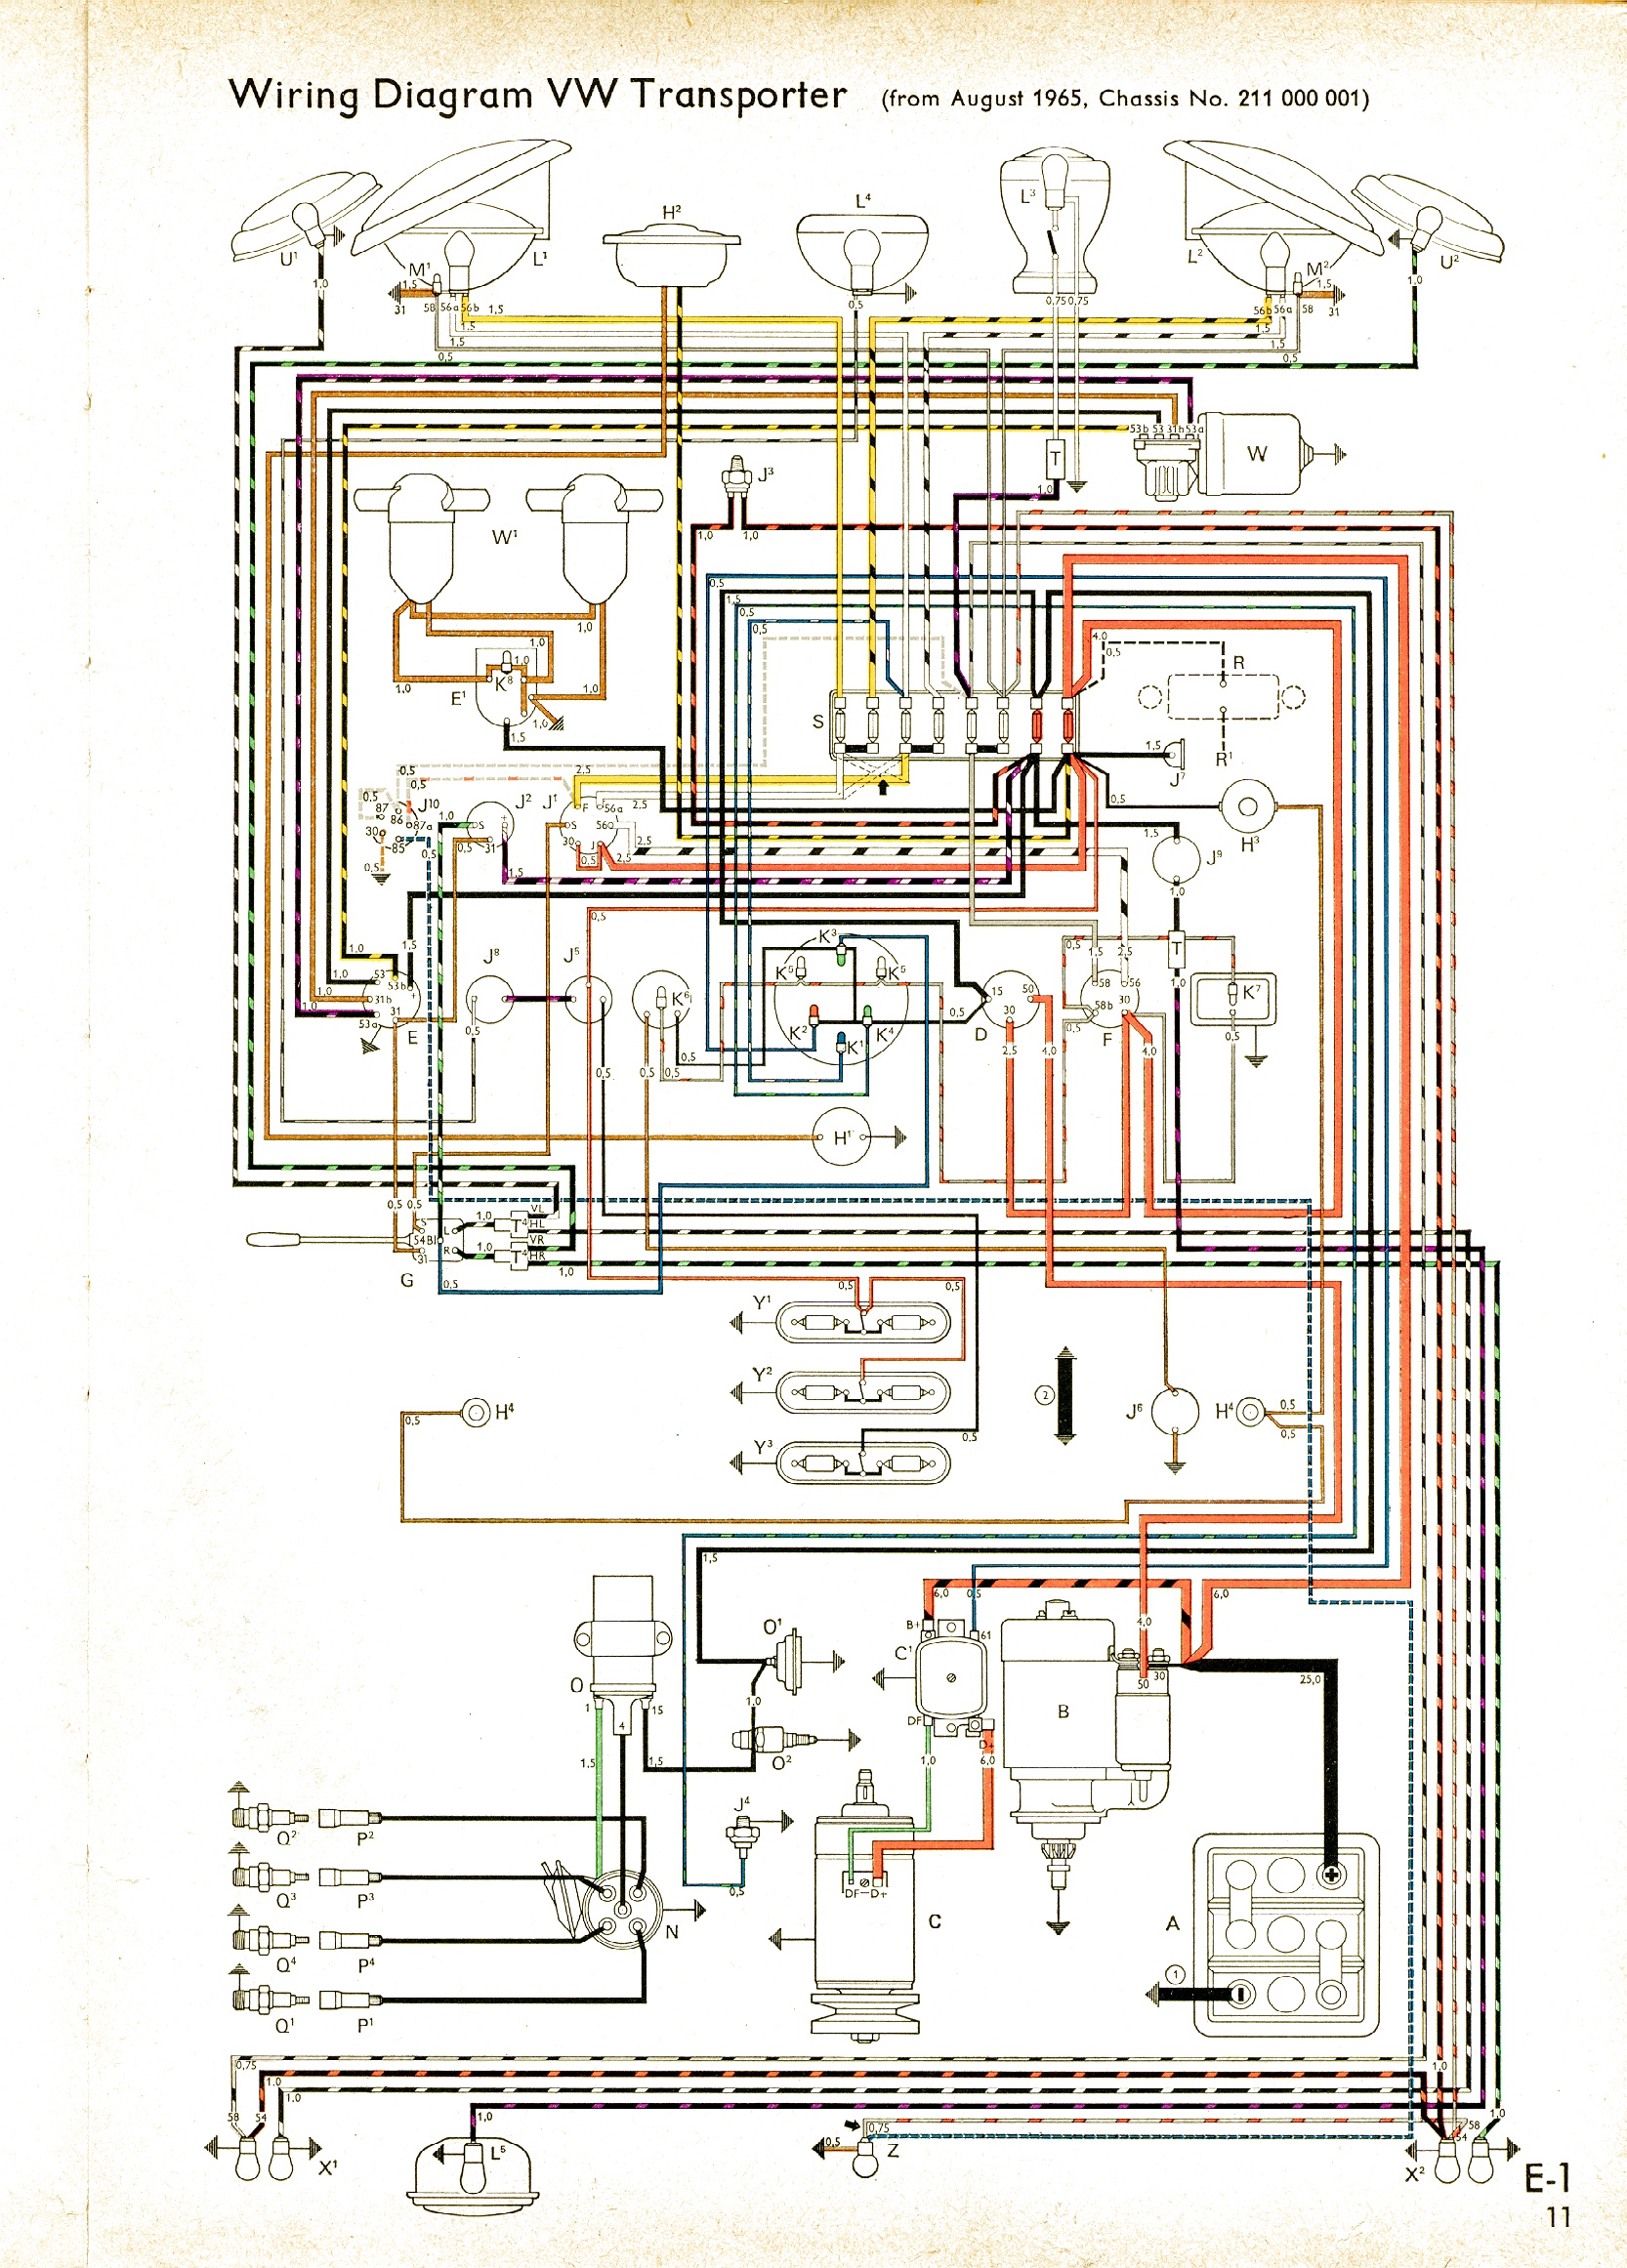 bus 65 bus wiring diagram vw wiring harness diagram \u2022 wiring diagrams j 1970 vw bus fuse box at gsmx.co